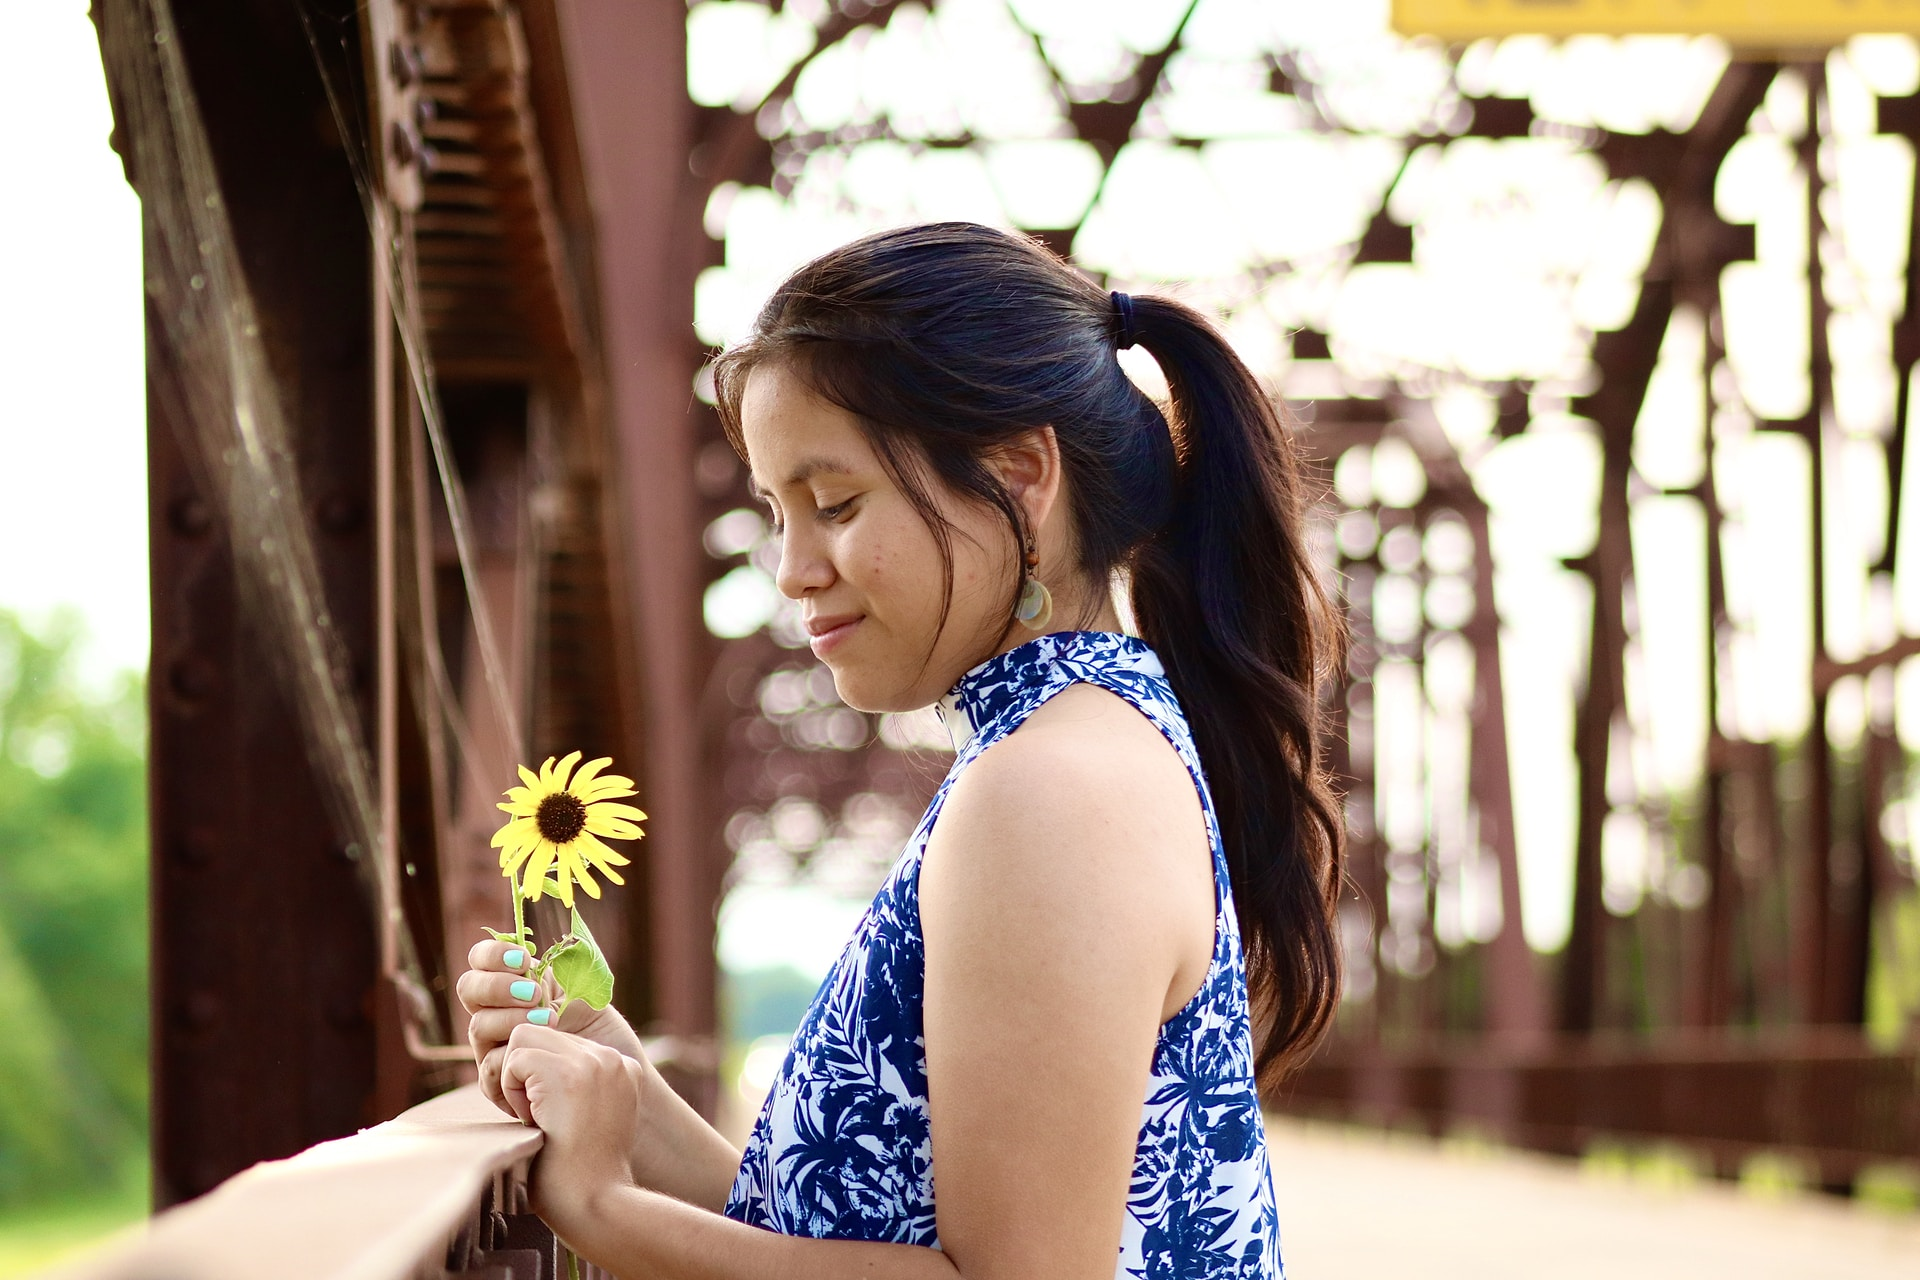 woman in blue and white floral sleeveless dress holding yellow flower during daytime